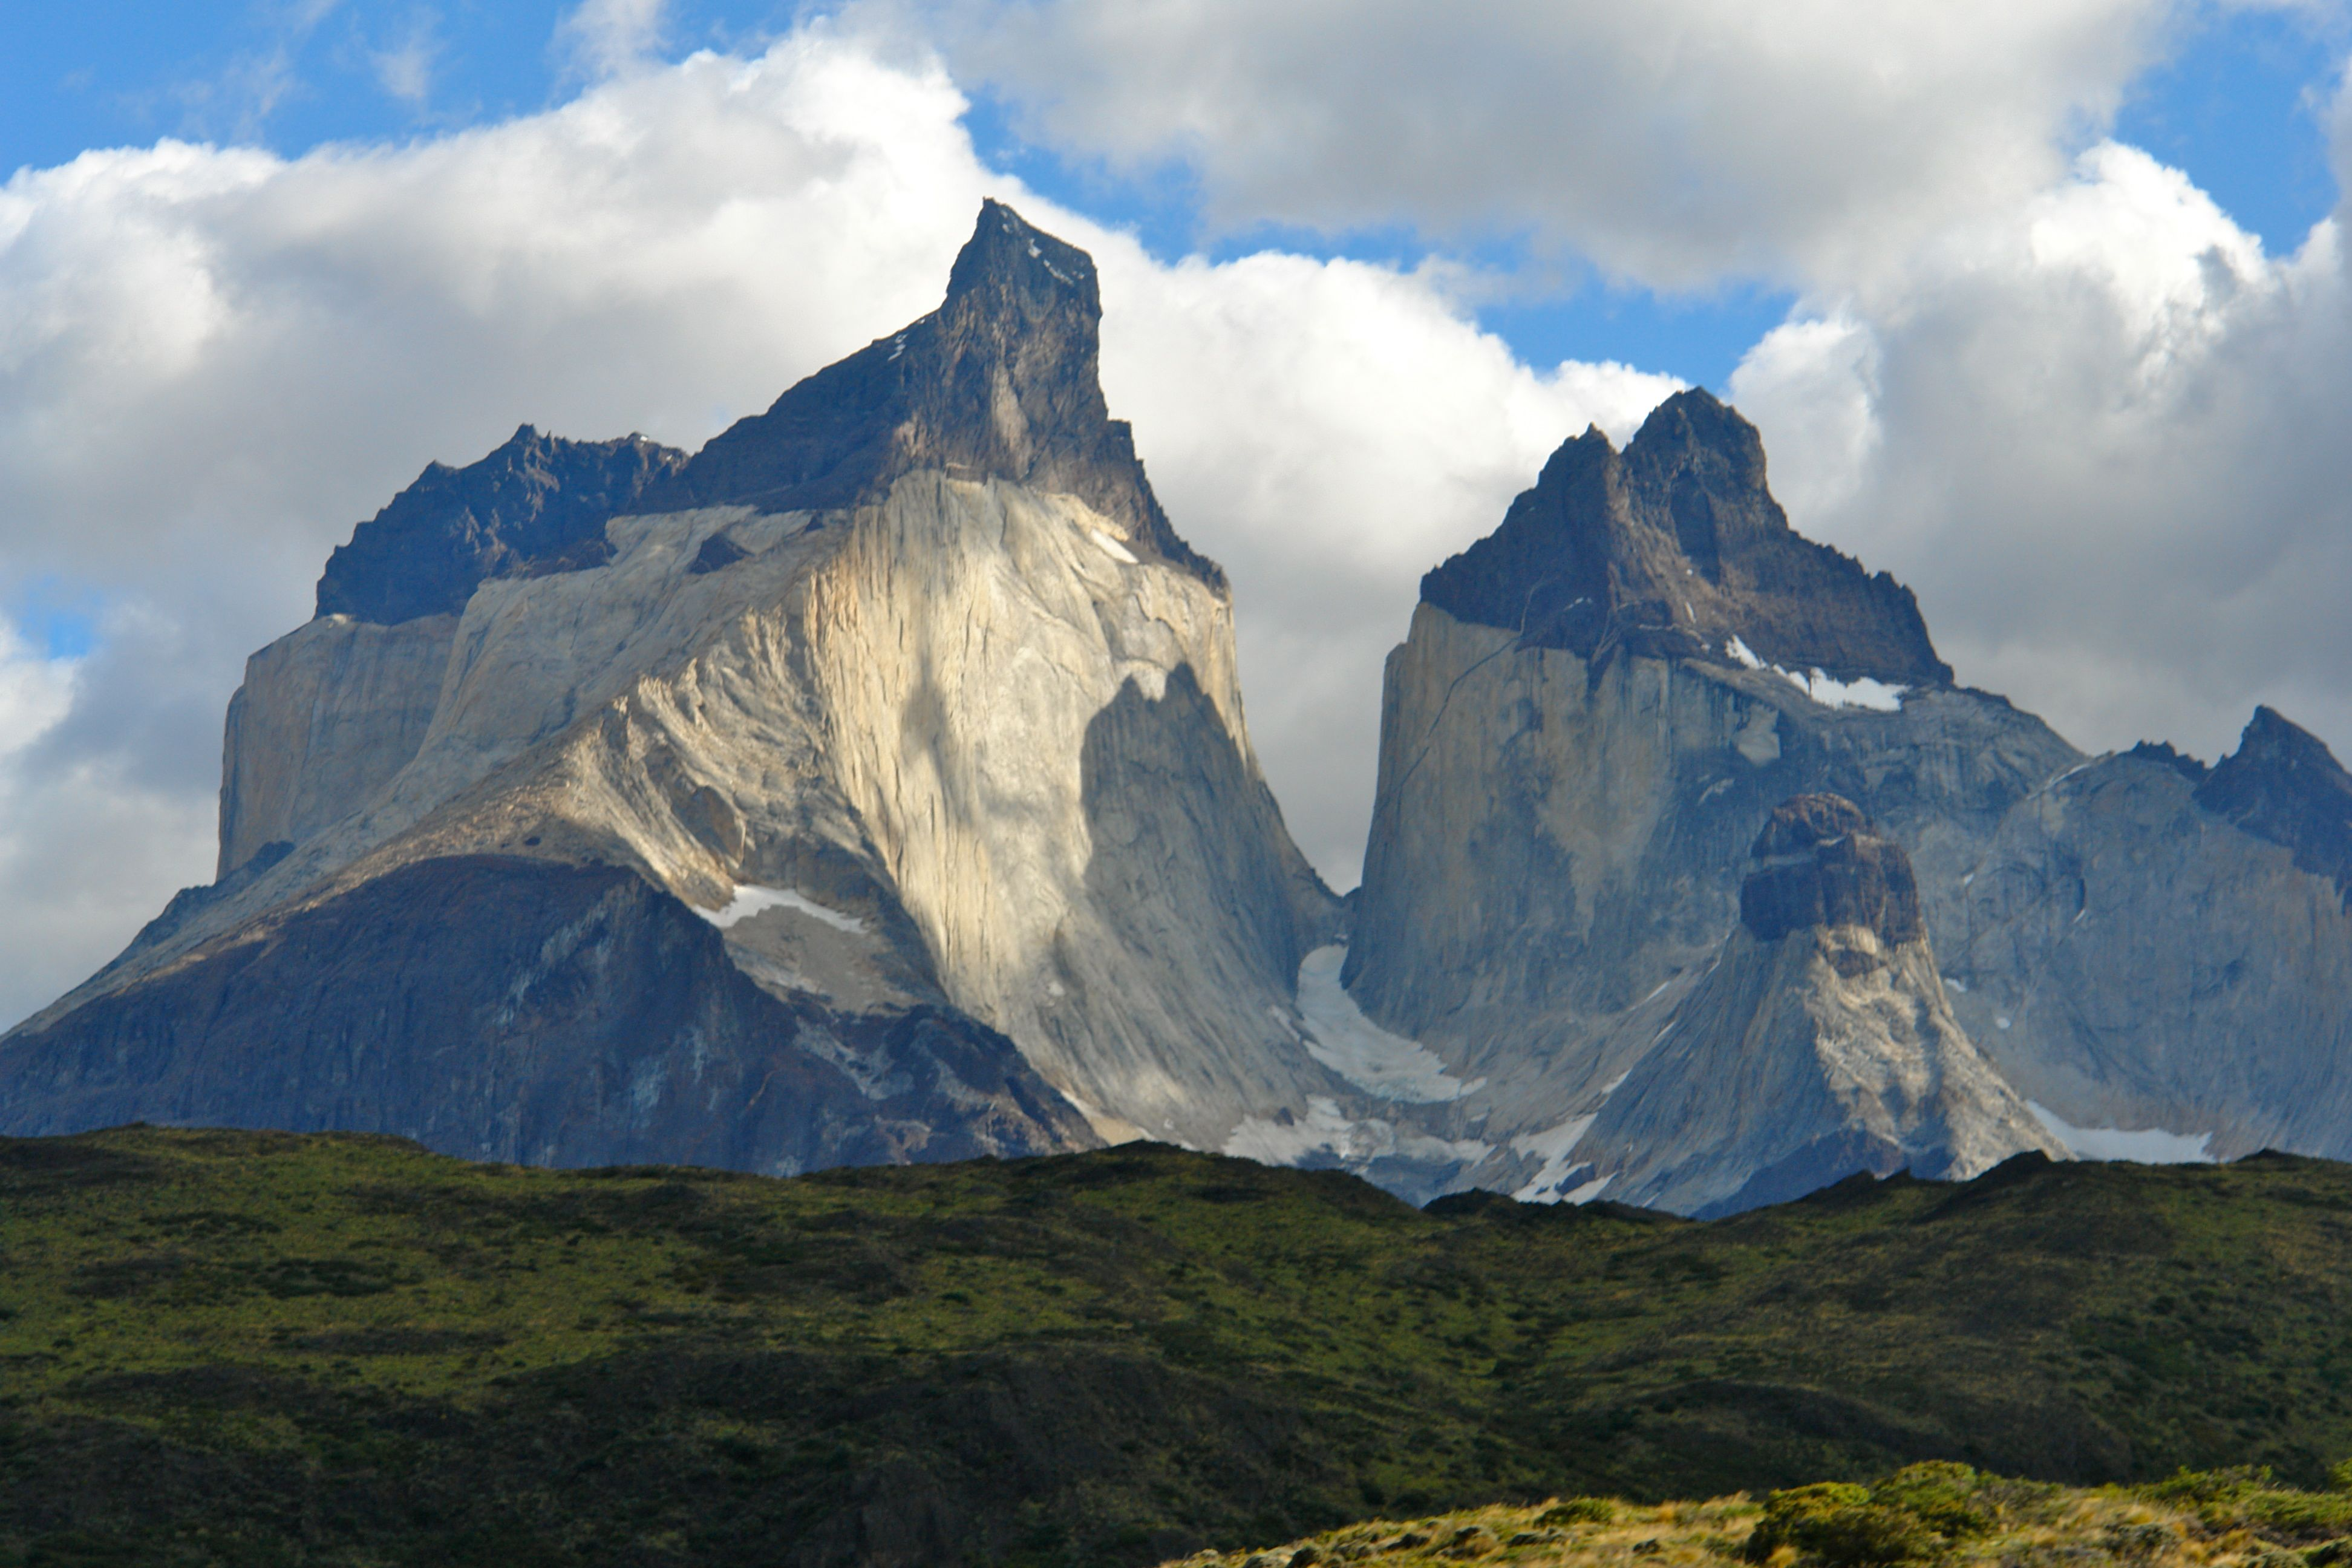 Northward_View_of_Cuernos_del_Paine_(The_Horns_of_Paine),_Torres_del_Paine_National_Park,_Chile.jpg